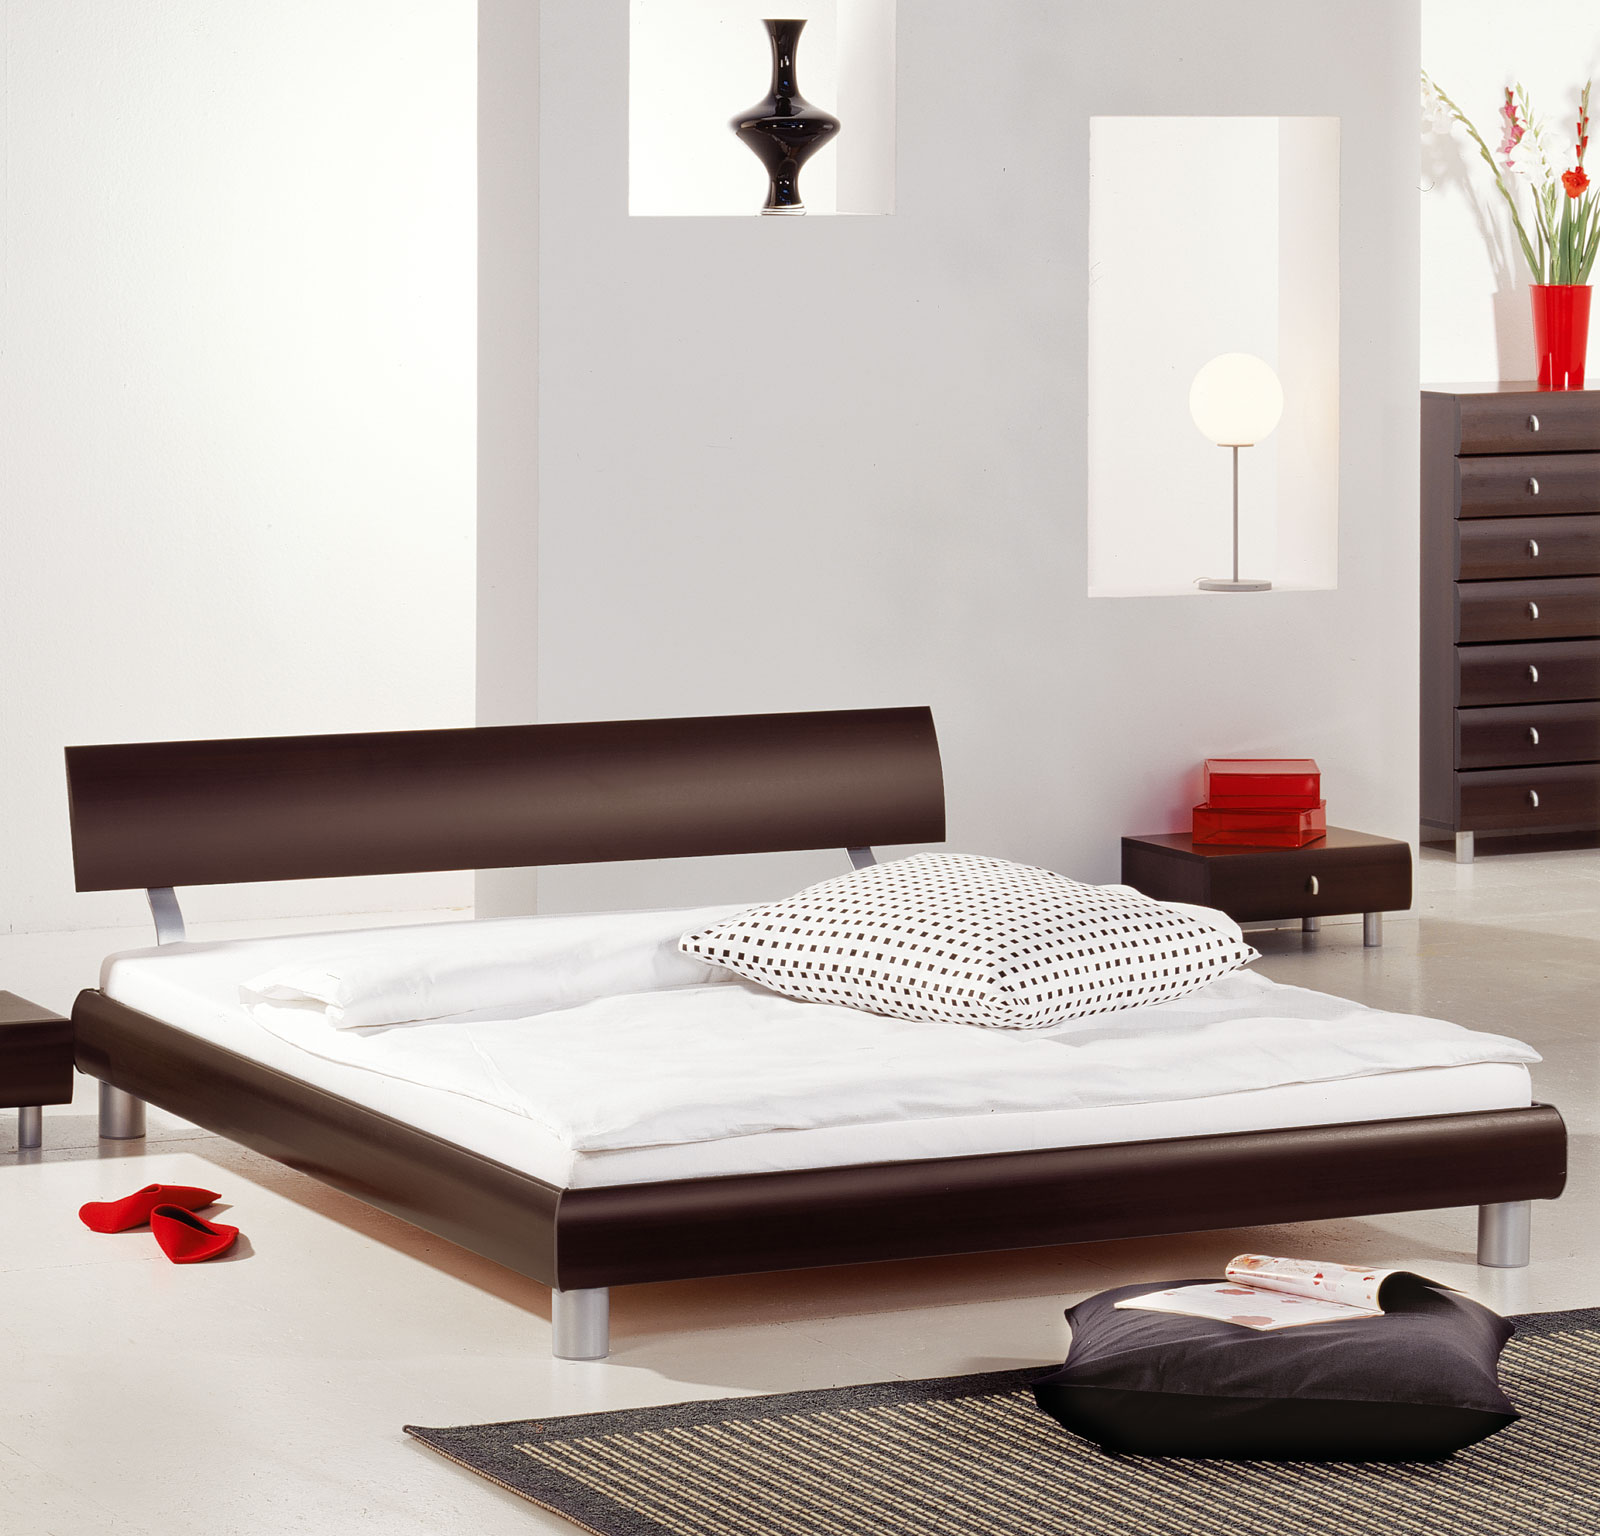 designer bettgestell z b in 140x200 cm novara. Black Bedroom Furniture Sets. Home Design Ideas